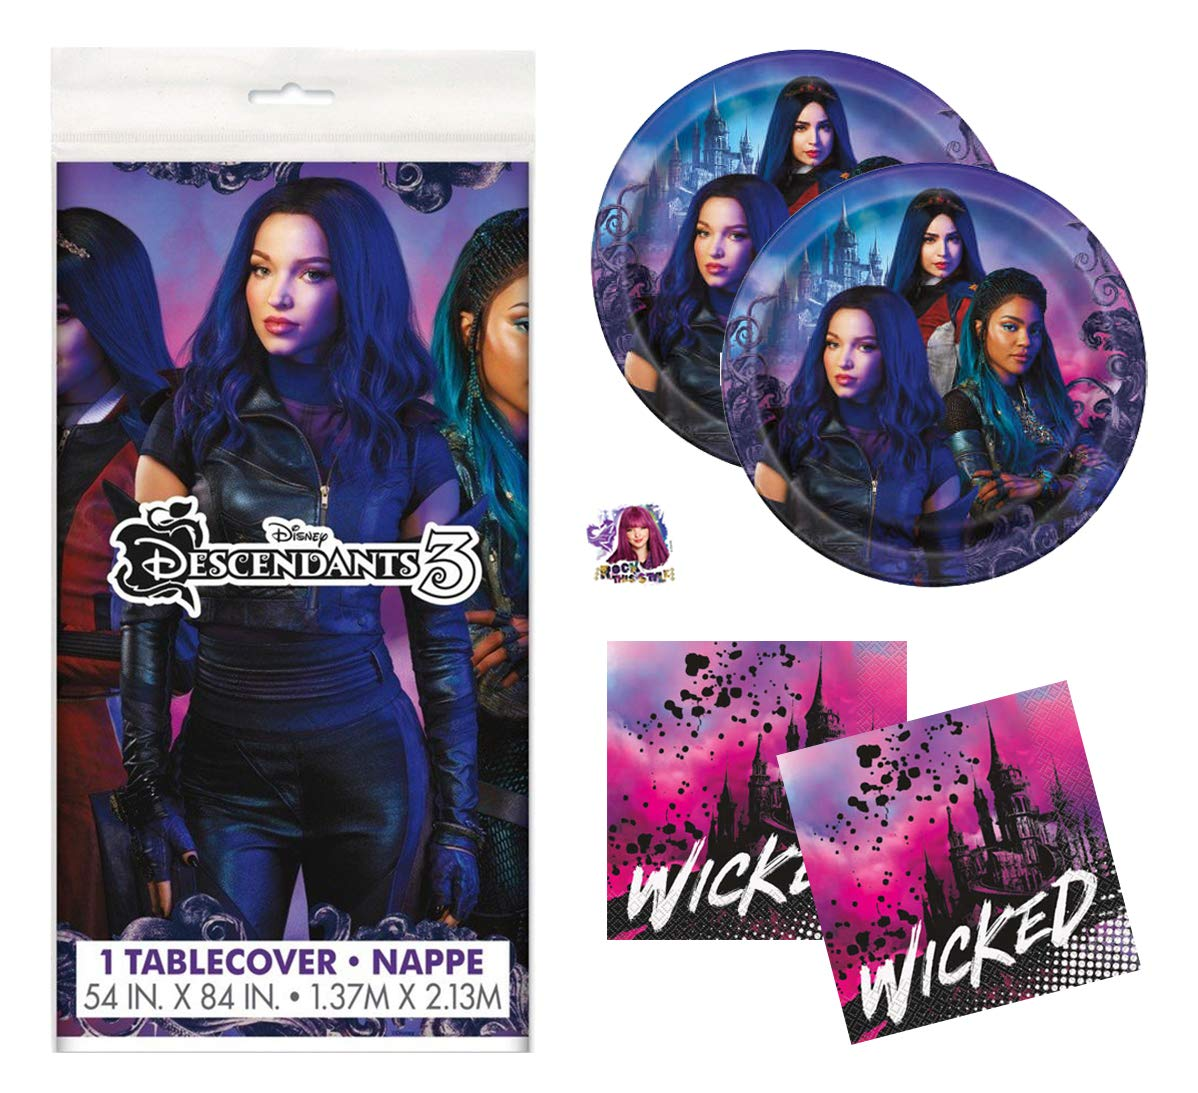 Descendants 3 Theme Birthday Party Supplies Set - Serves 16 - Tablecover, Plates, Napkins and Sticker - Mal, Uma and Audrey by Descendants 3